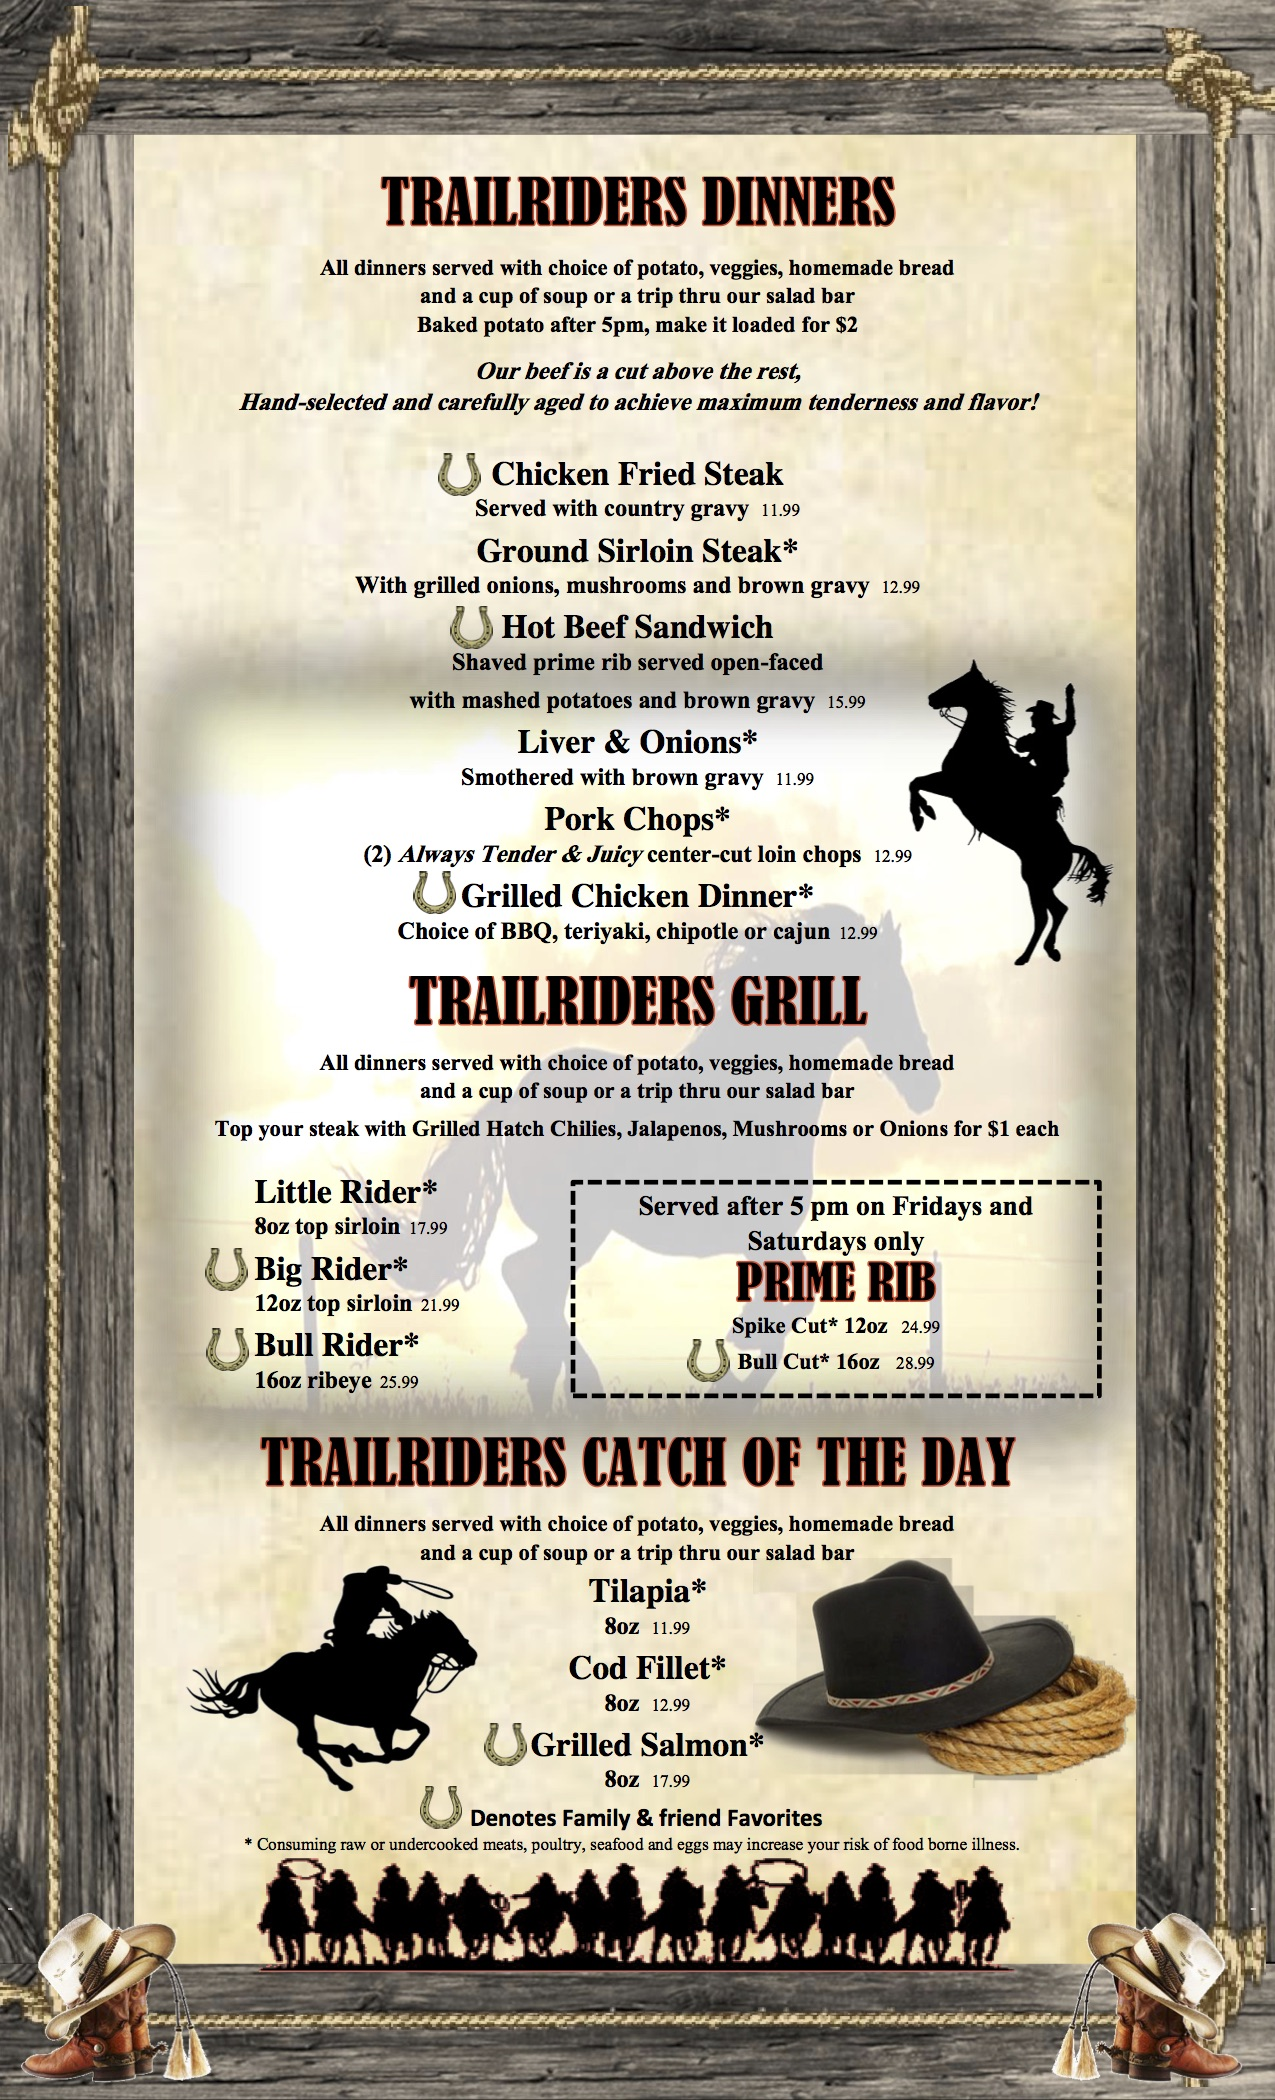 Trailriders Family Restaurant And Bar 140 N Main St Eagar Az Animal M Stak 21 Serving Download Our Lunch Dinner Menu Pdf